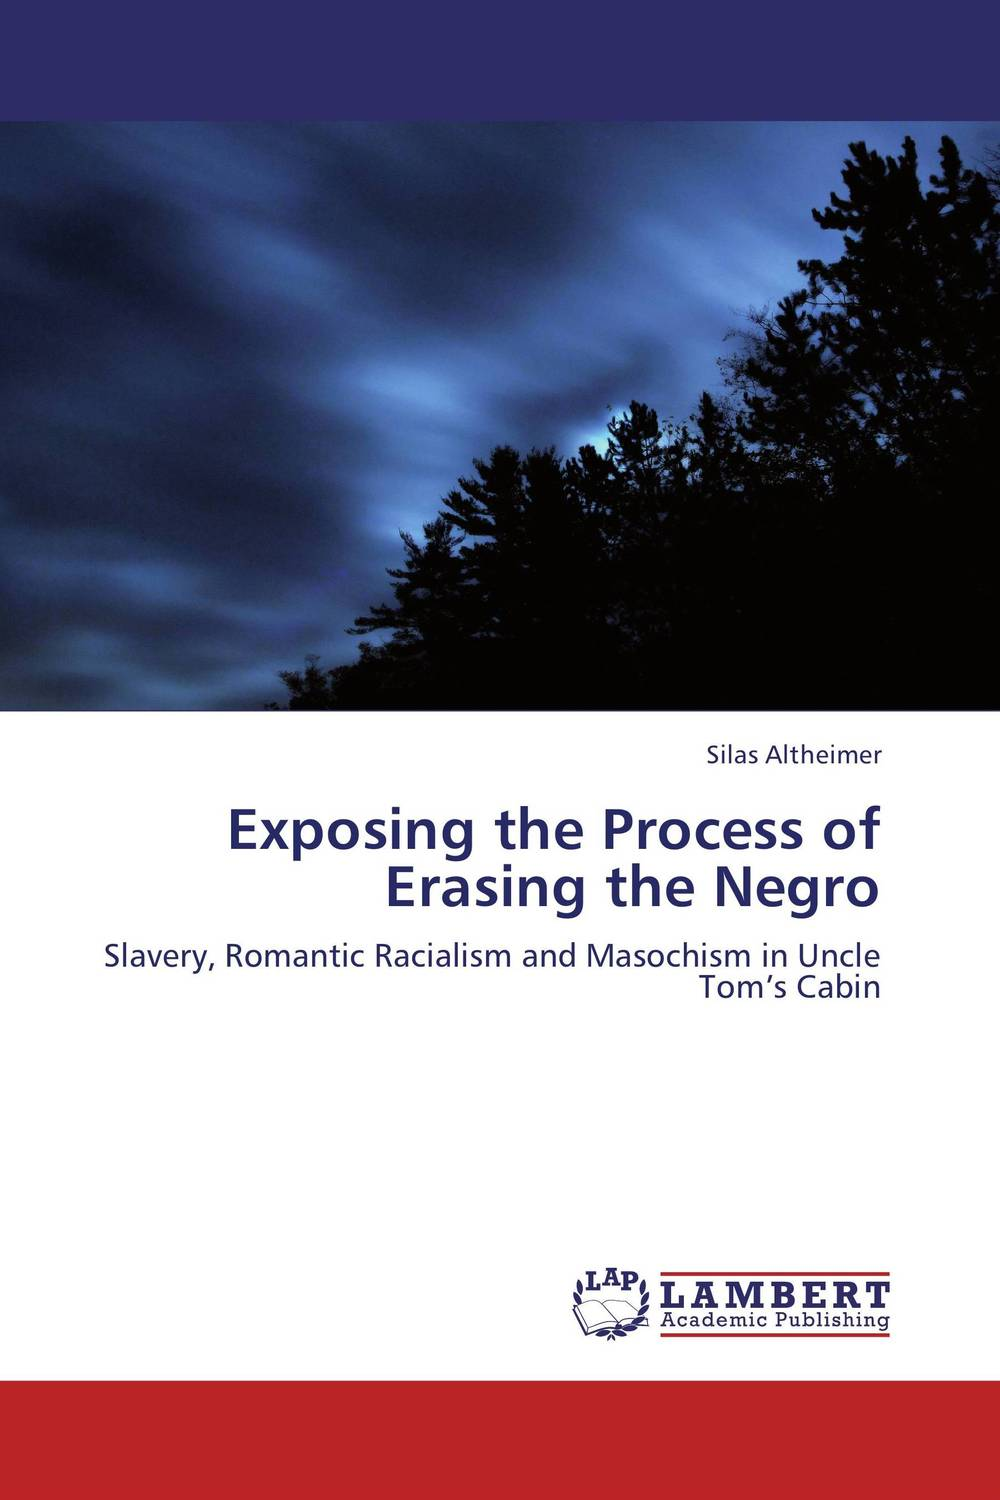 Exposing the Process of Erasing the Negro uncle silas